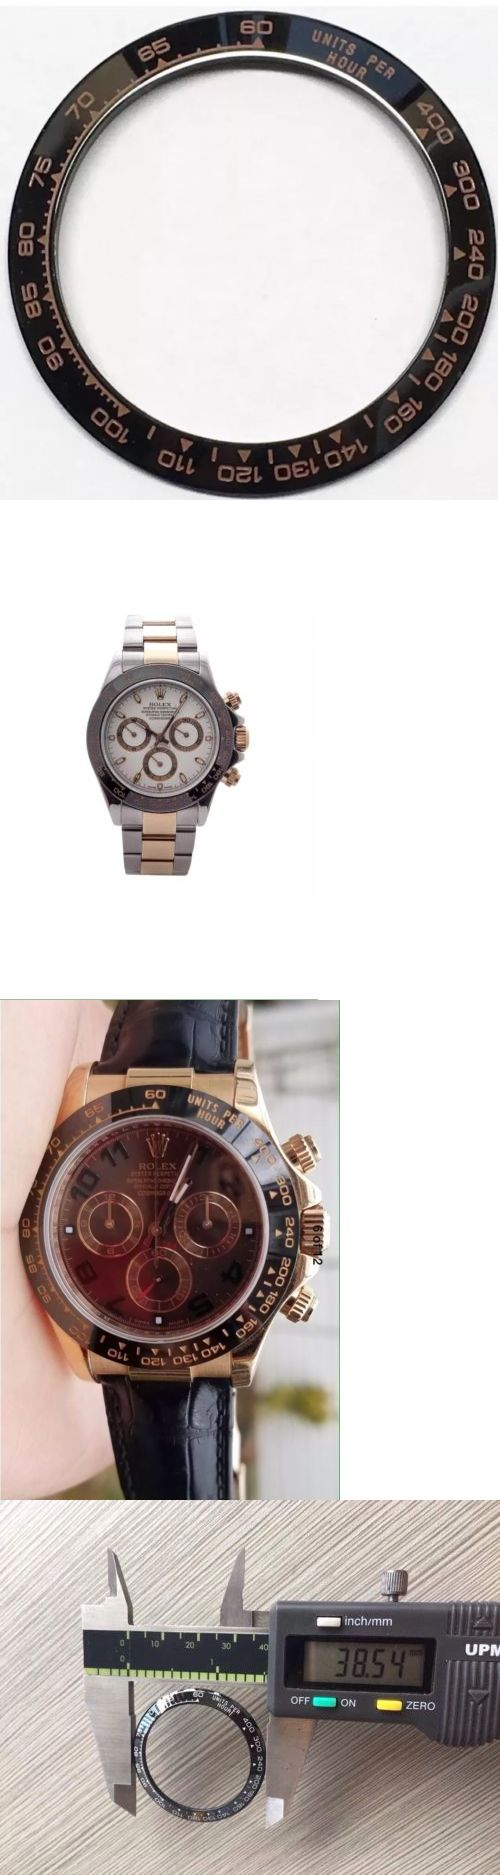 Bezels and Inserts 57714: Ceramic Bezel In Black With Rose Gold Engraved For Rolex Daytona 16520,16523 -> BUY IT NOW ONLY: $69.92 on eBay!